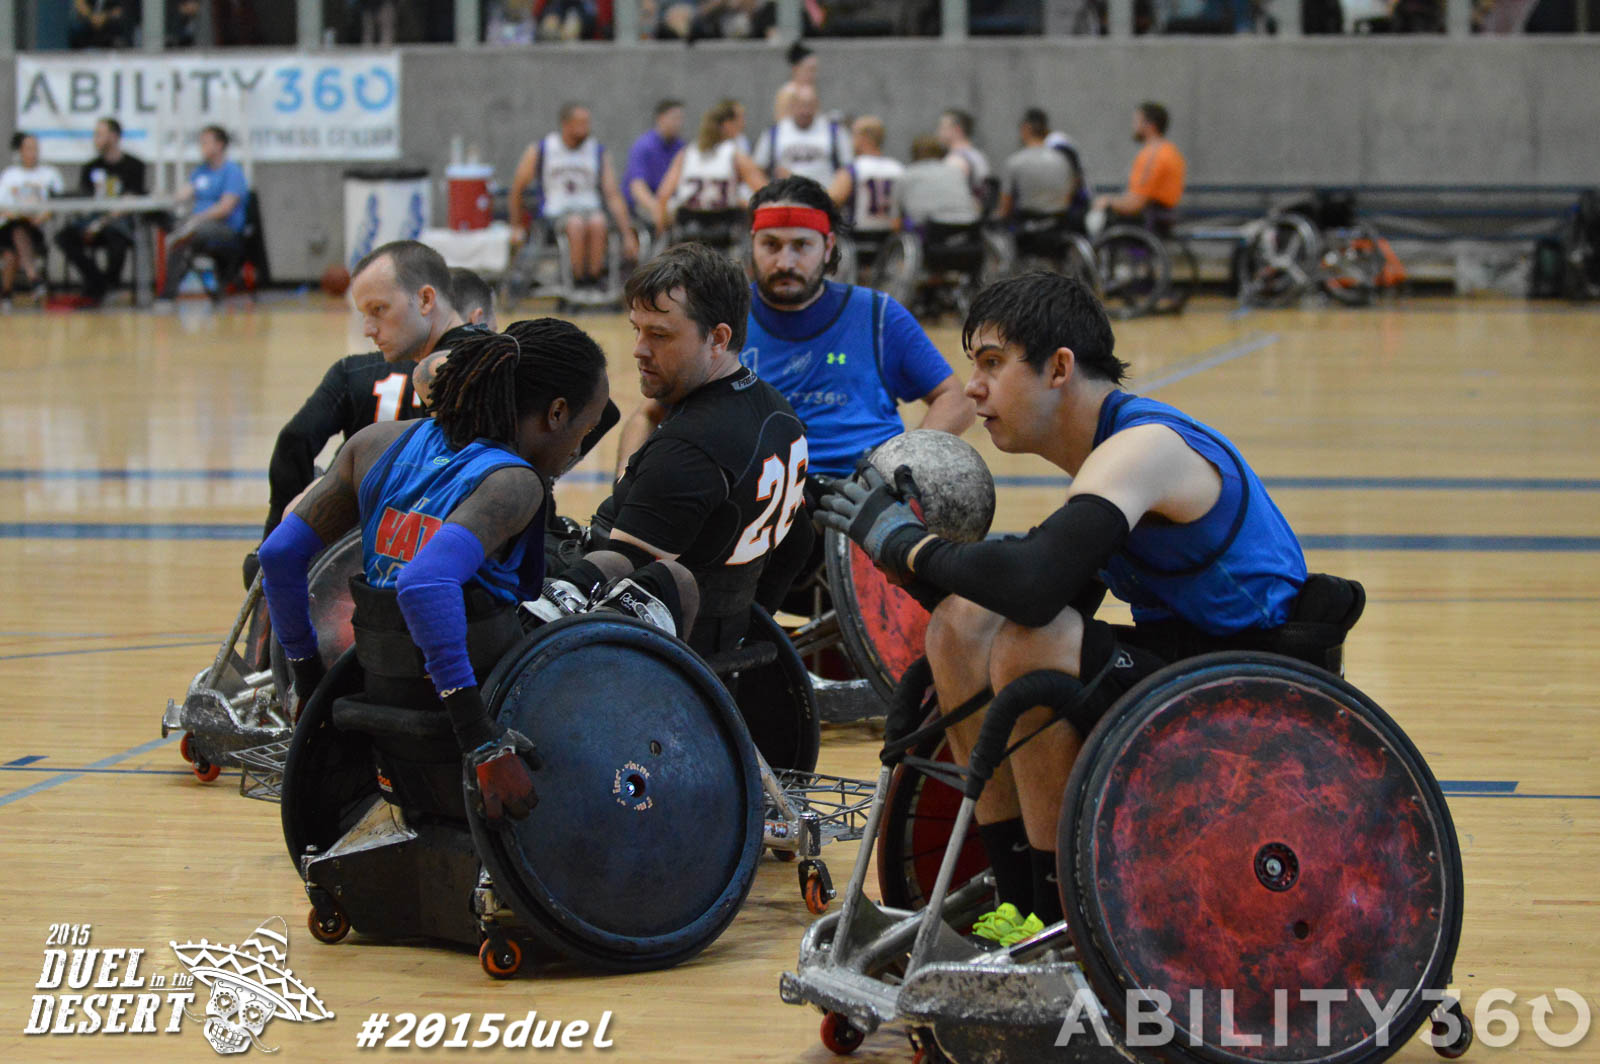 Centered in the shot. a cluster of wheelchair Rugby players. Blue shirted player in foreground has the ball, while two other blue shirts block out players. from the black shirted team.